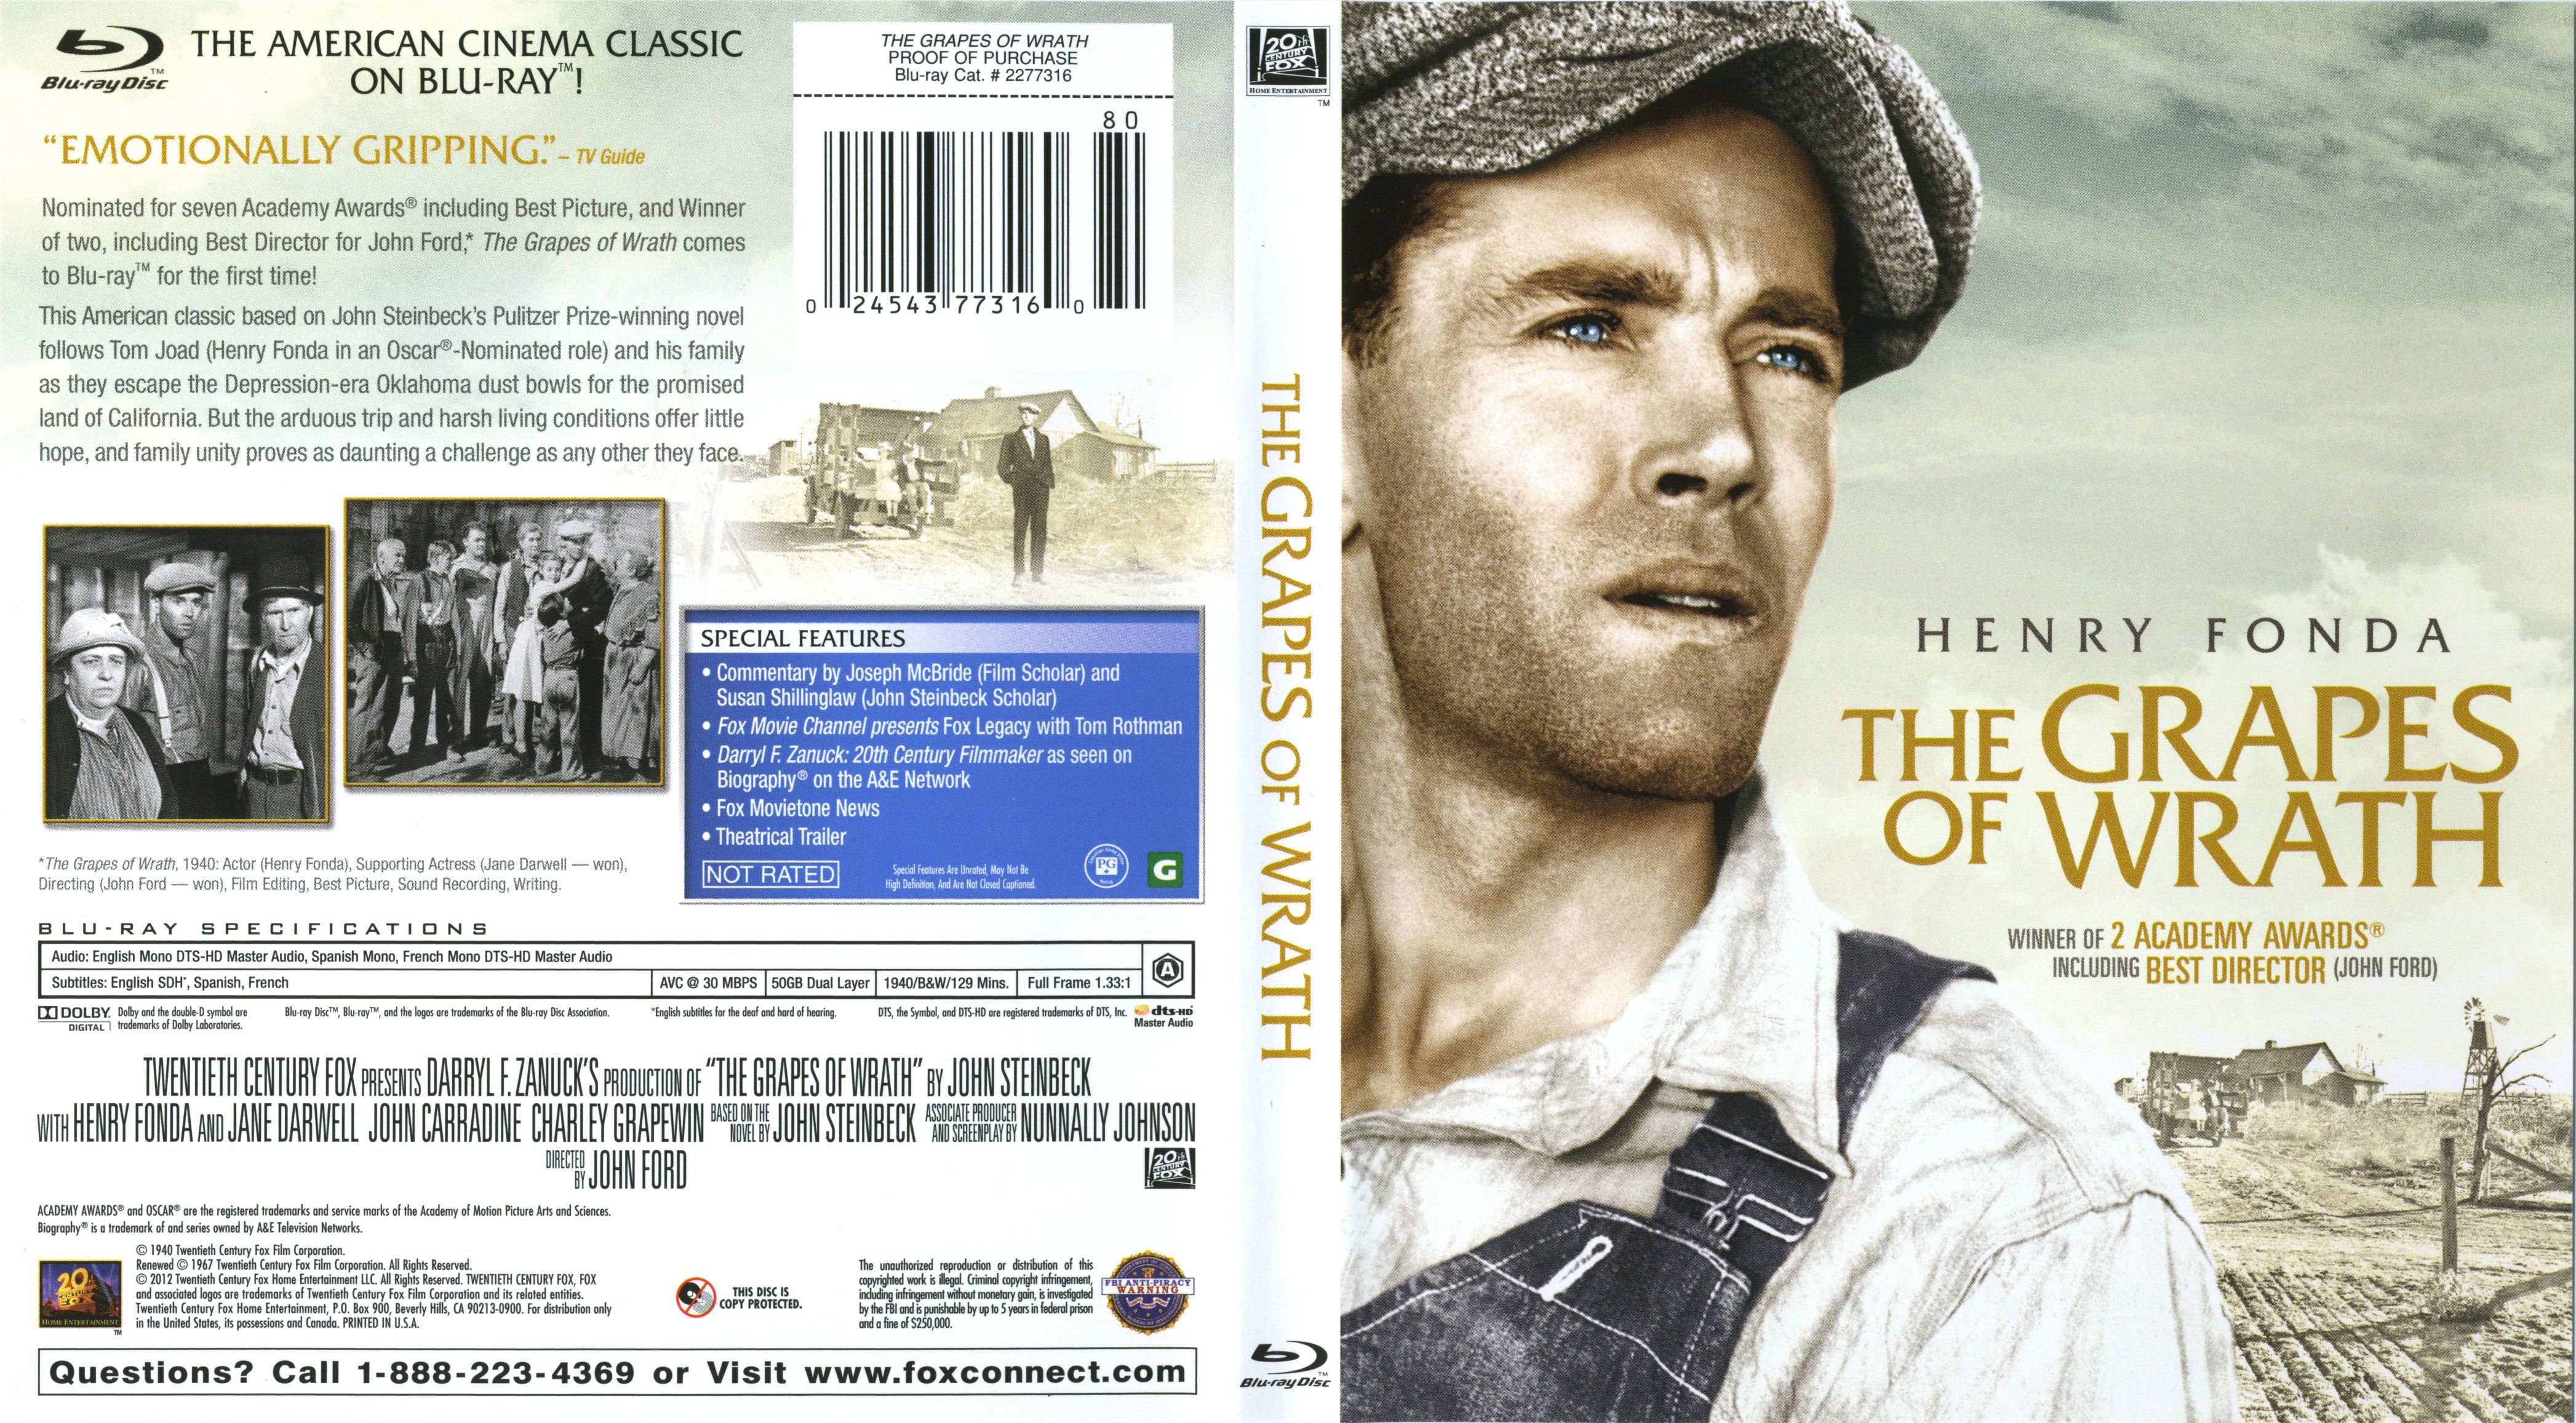 a portrayal of social realism in the grapes of wrath by john steinbeck